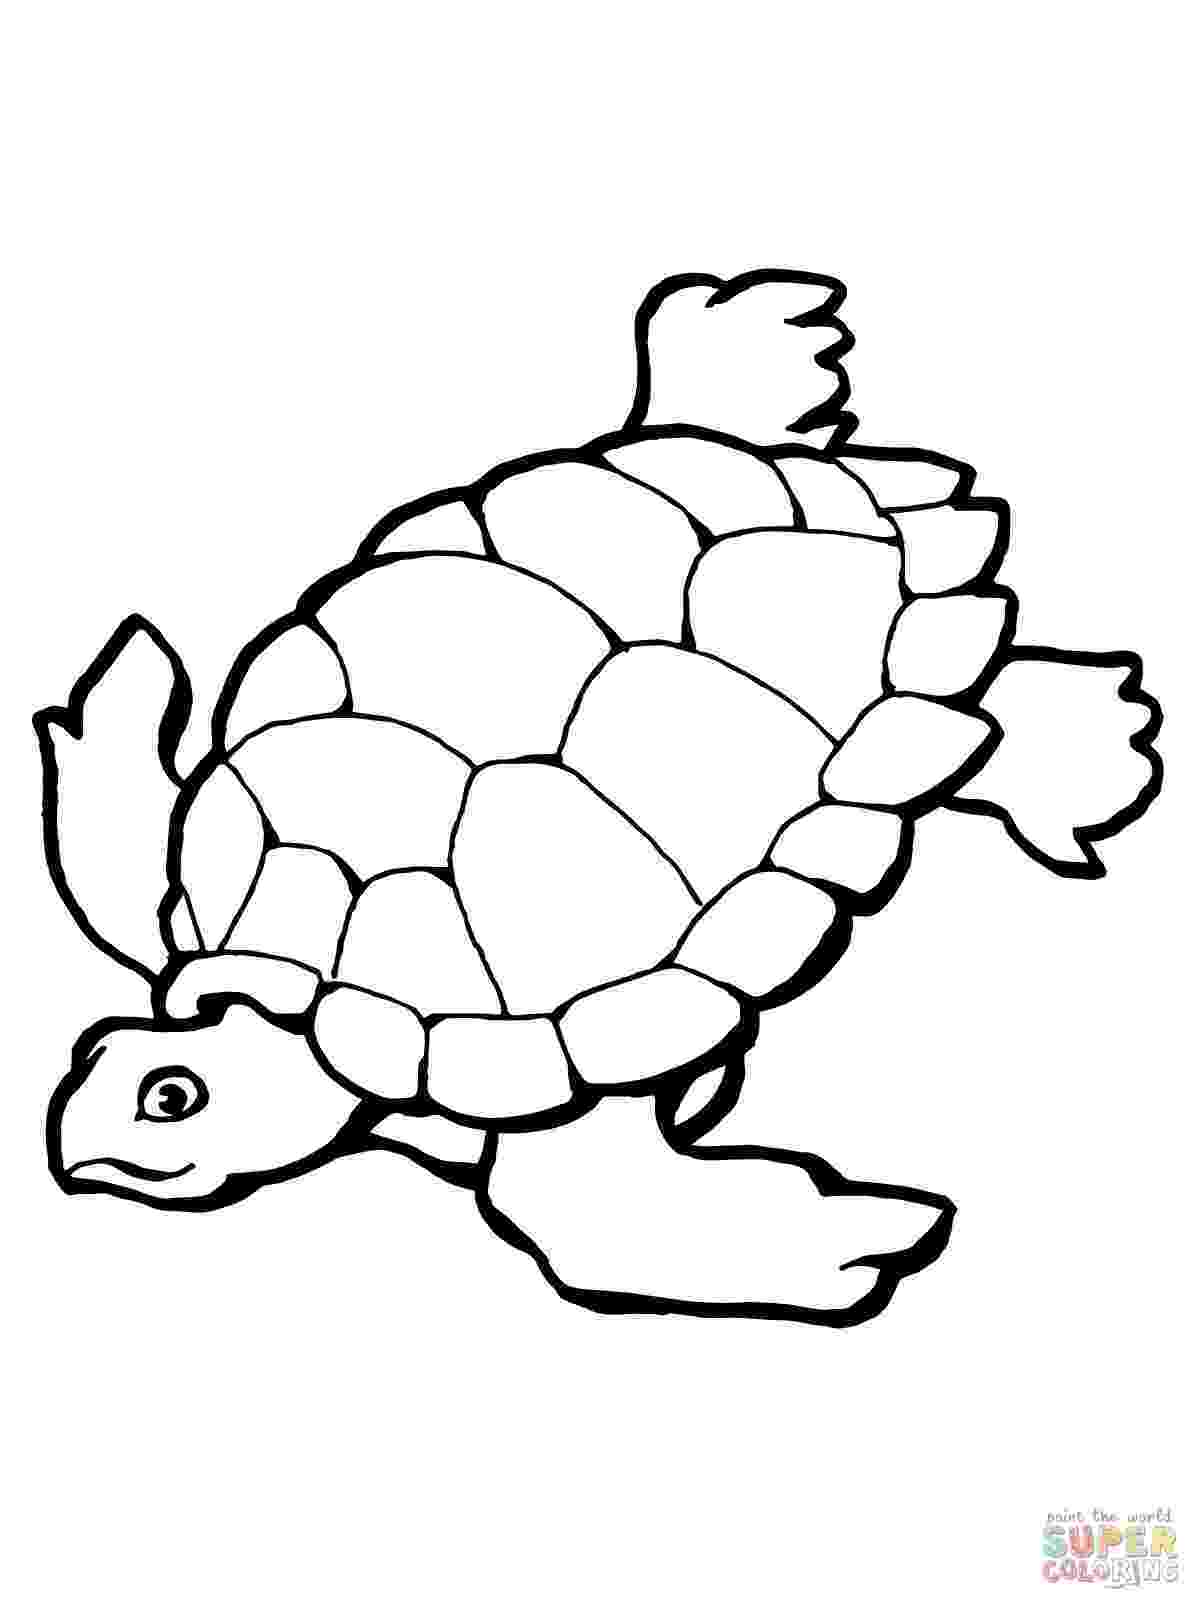 turtle coloring book turtles to print for free turtles kids coloring pages turtle coloring book